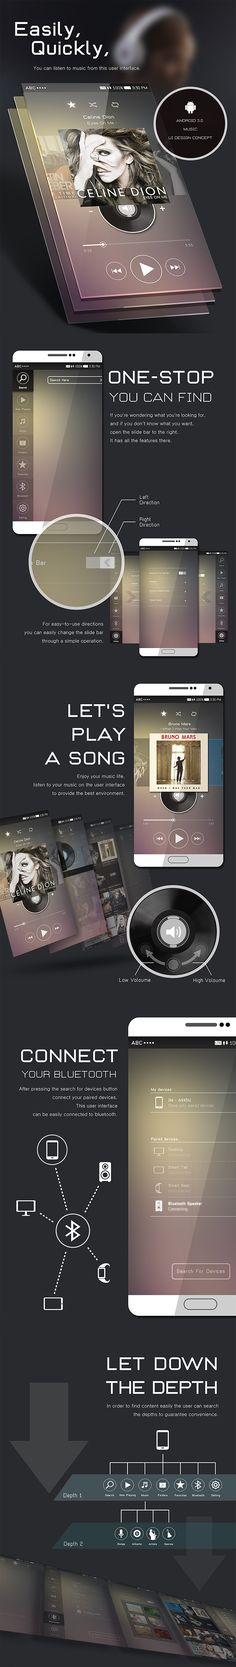 Android 5.0 Music UI Design Concept on Behance